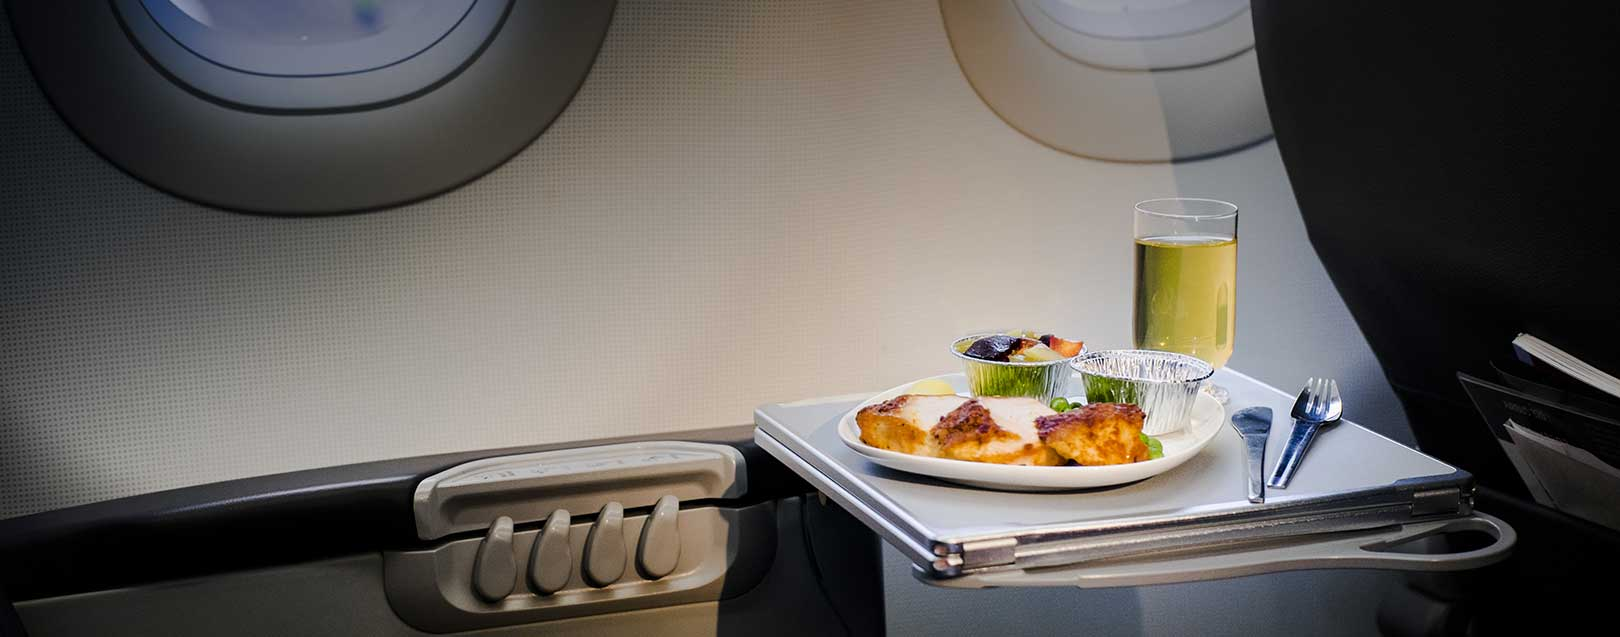 Govt exempts duty on re-import of catering cabin equipment, food, drink by airlines